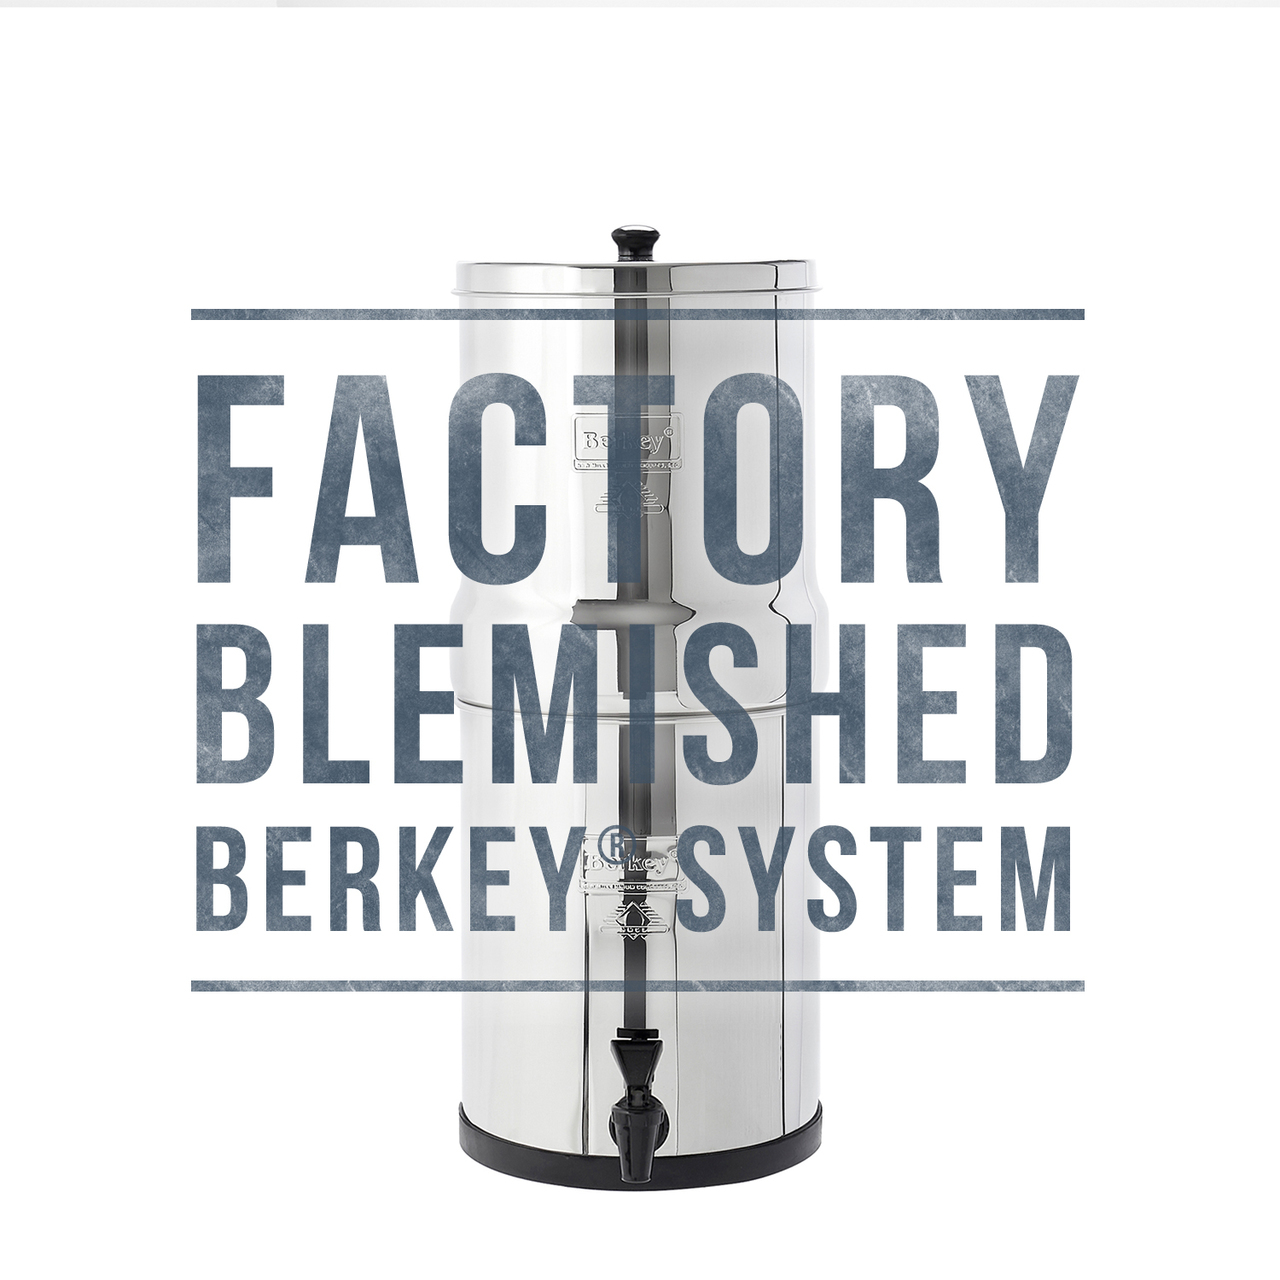 https://berkeyfilterwater.com/product/berkey-scratch-dent-sale